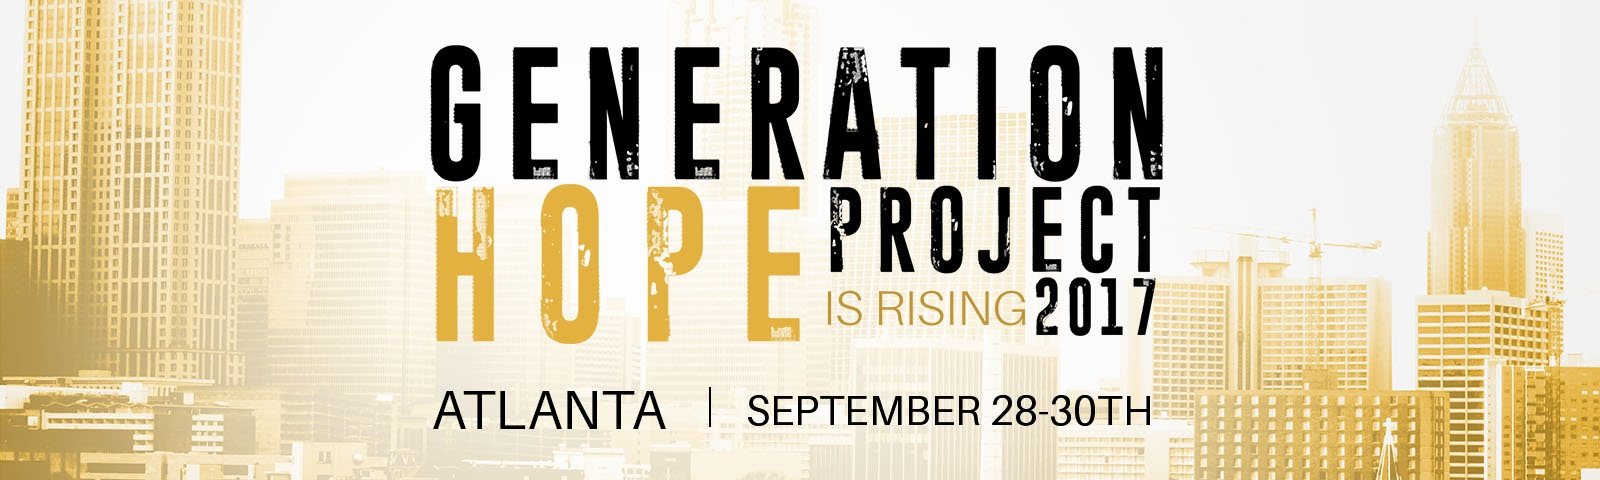 Generation Hope Project Atlanta 2017